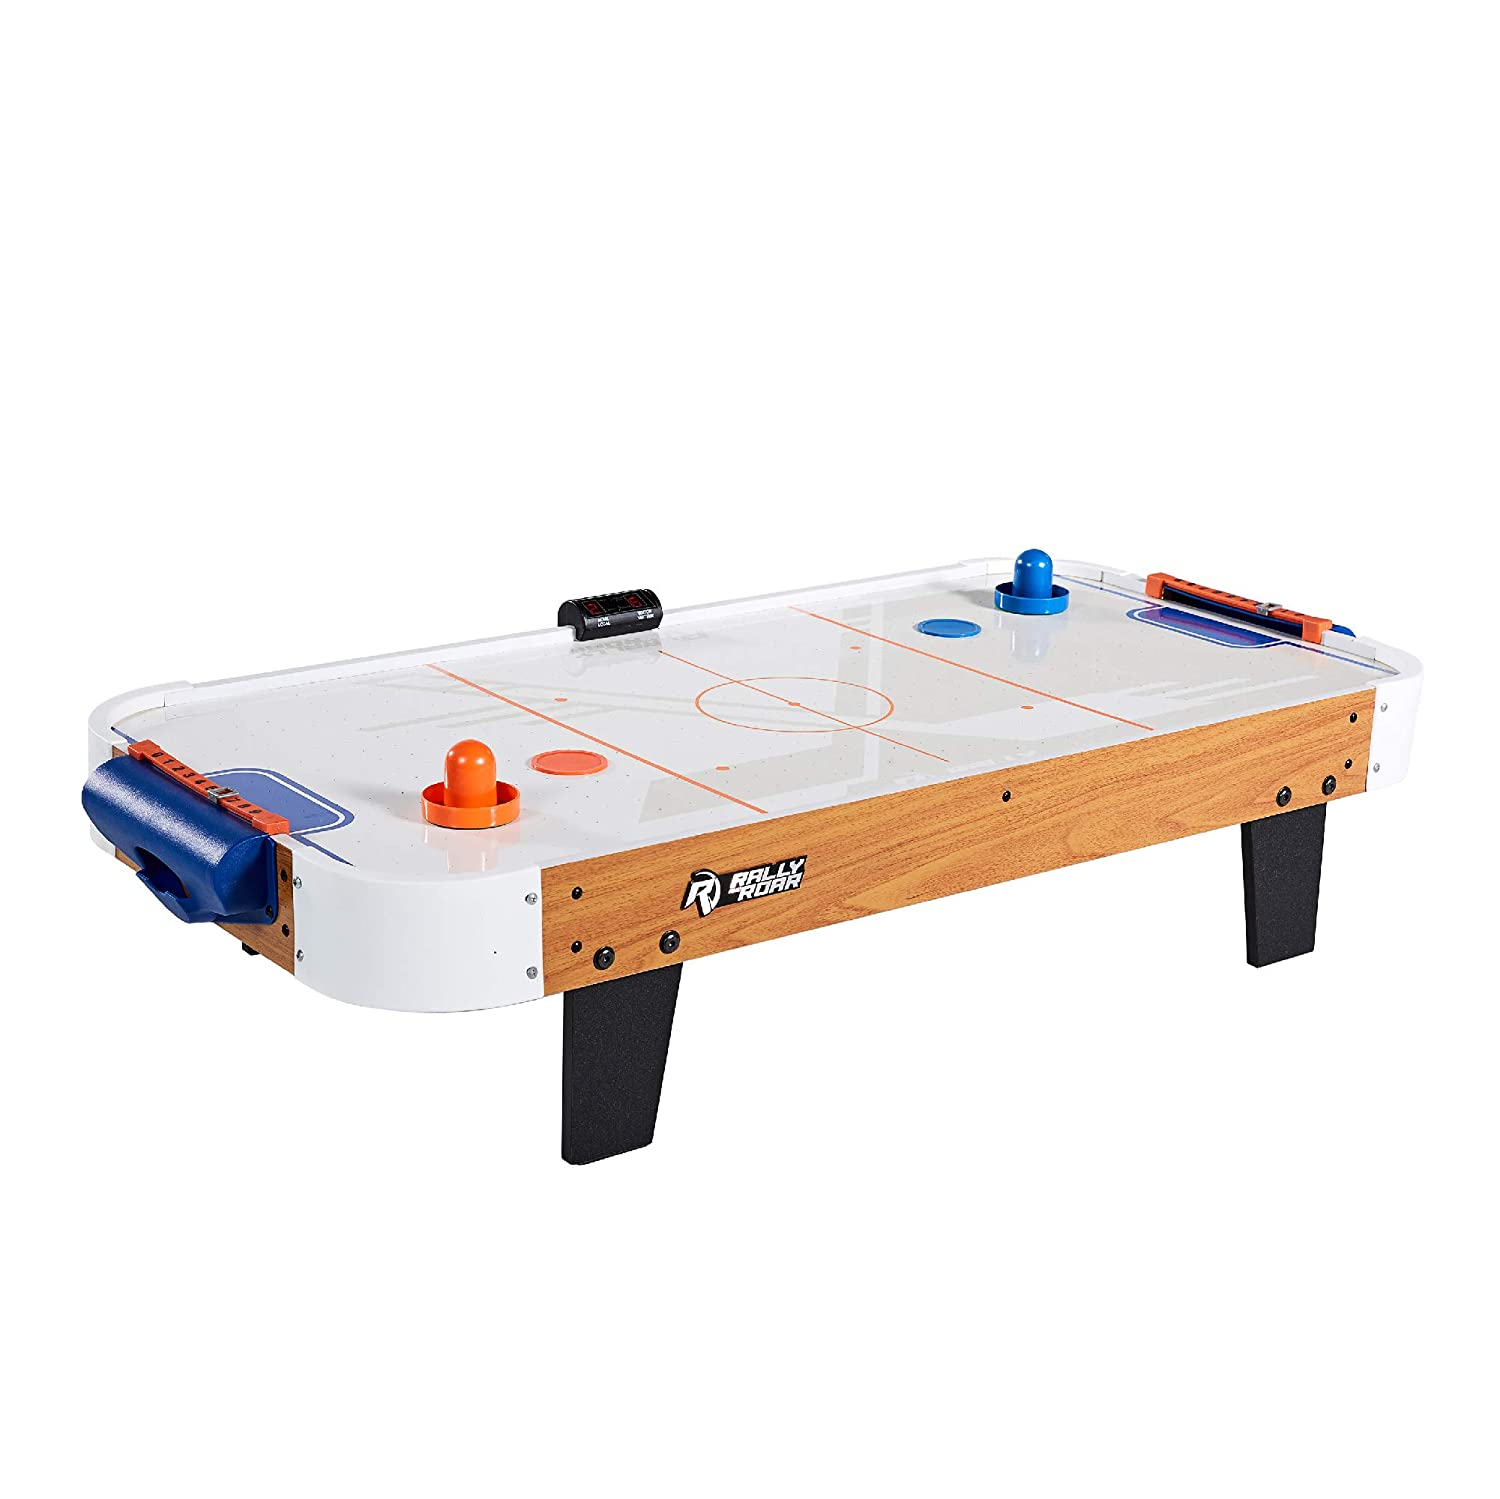 Rally and Roar Tabletop Air Hockey Table, Travel-Size